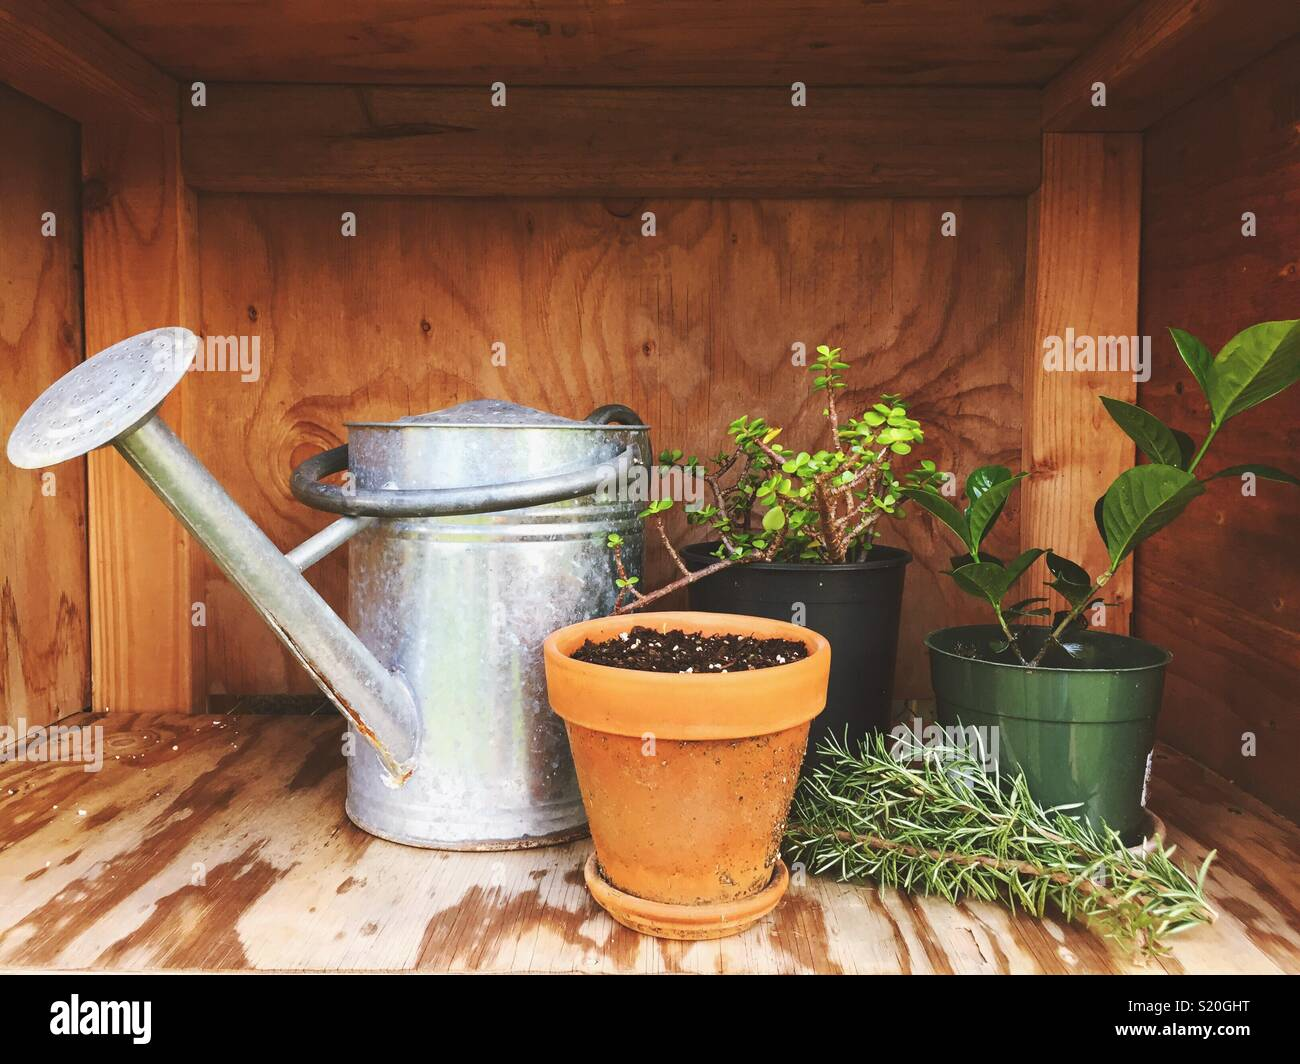 Potted plants and watering can. Gardening. Potting soil. Wood shed ...